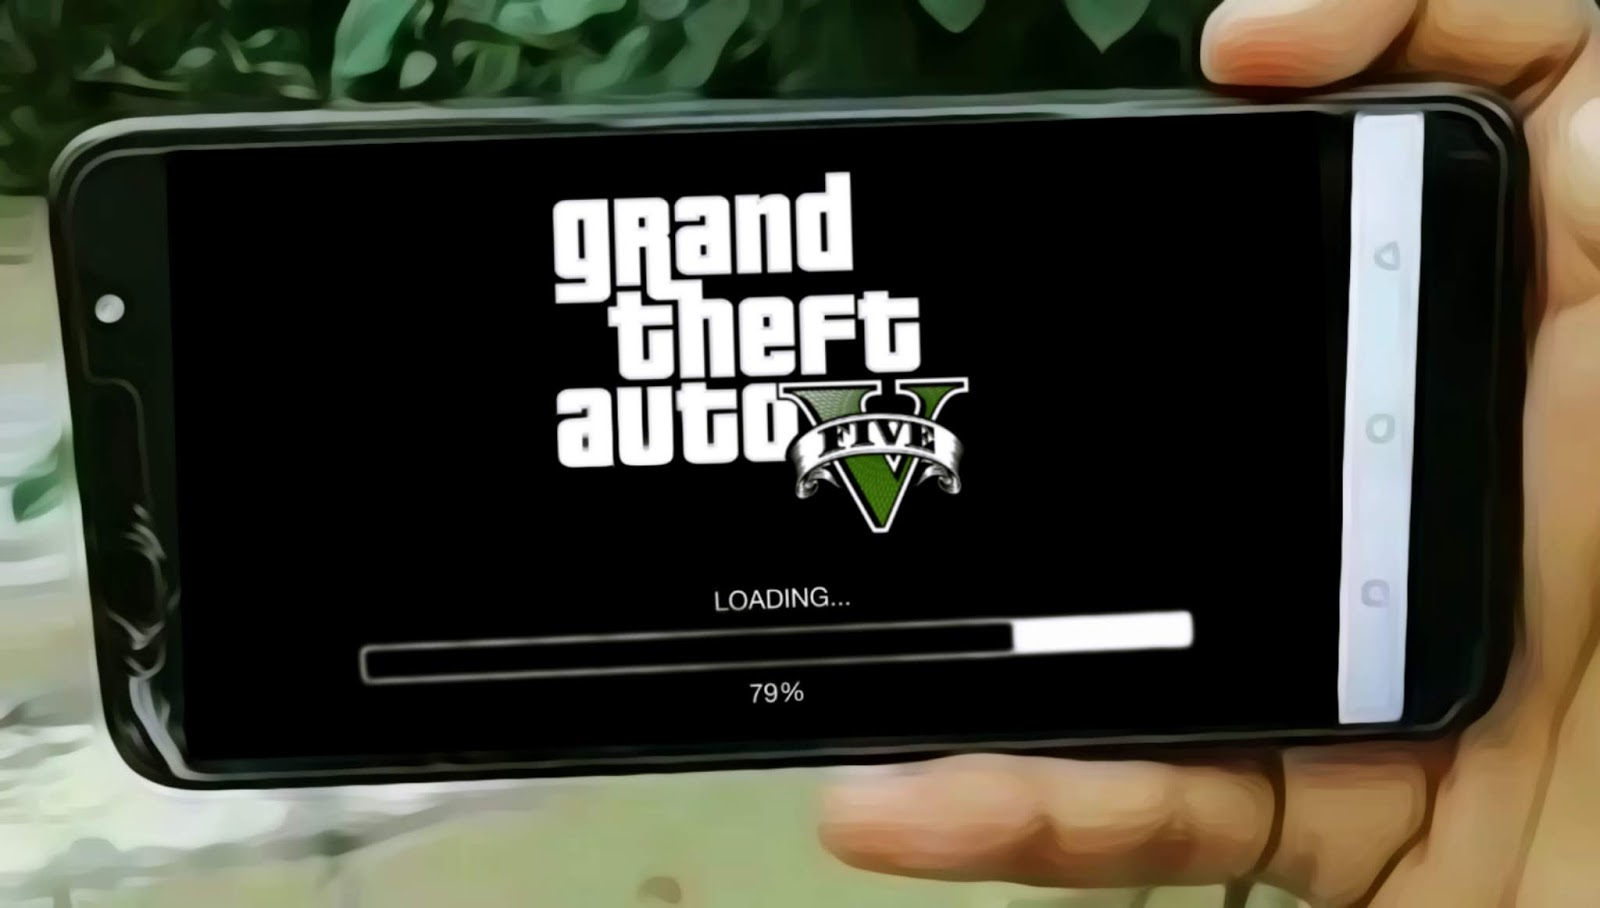 Download Gta 5 Iso Ps3 Emulator Android idea gallery